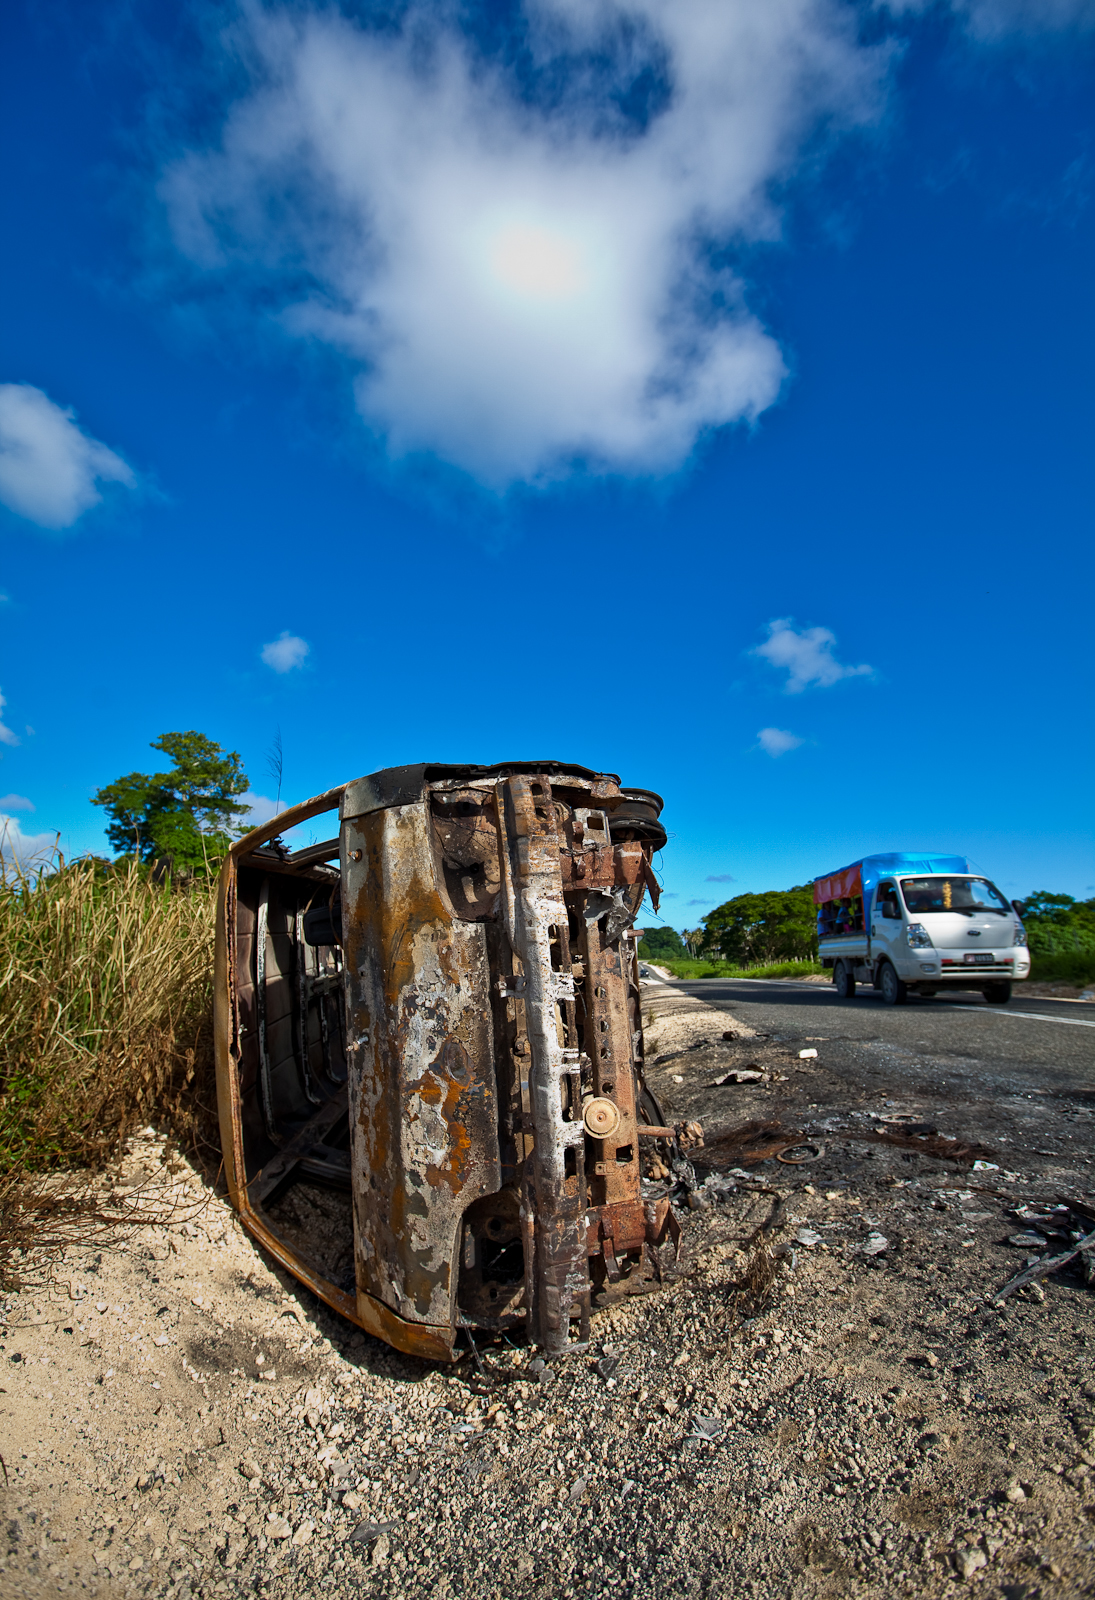 A BURNED OUT CAR ON EFATE, VANUATU